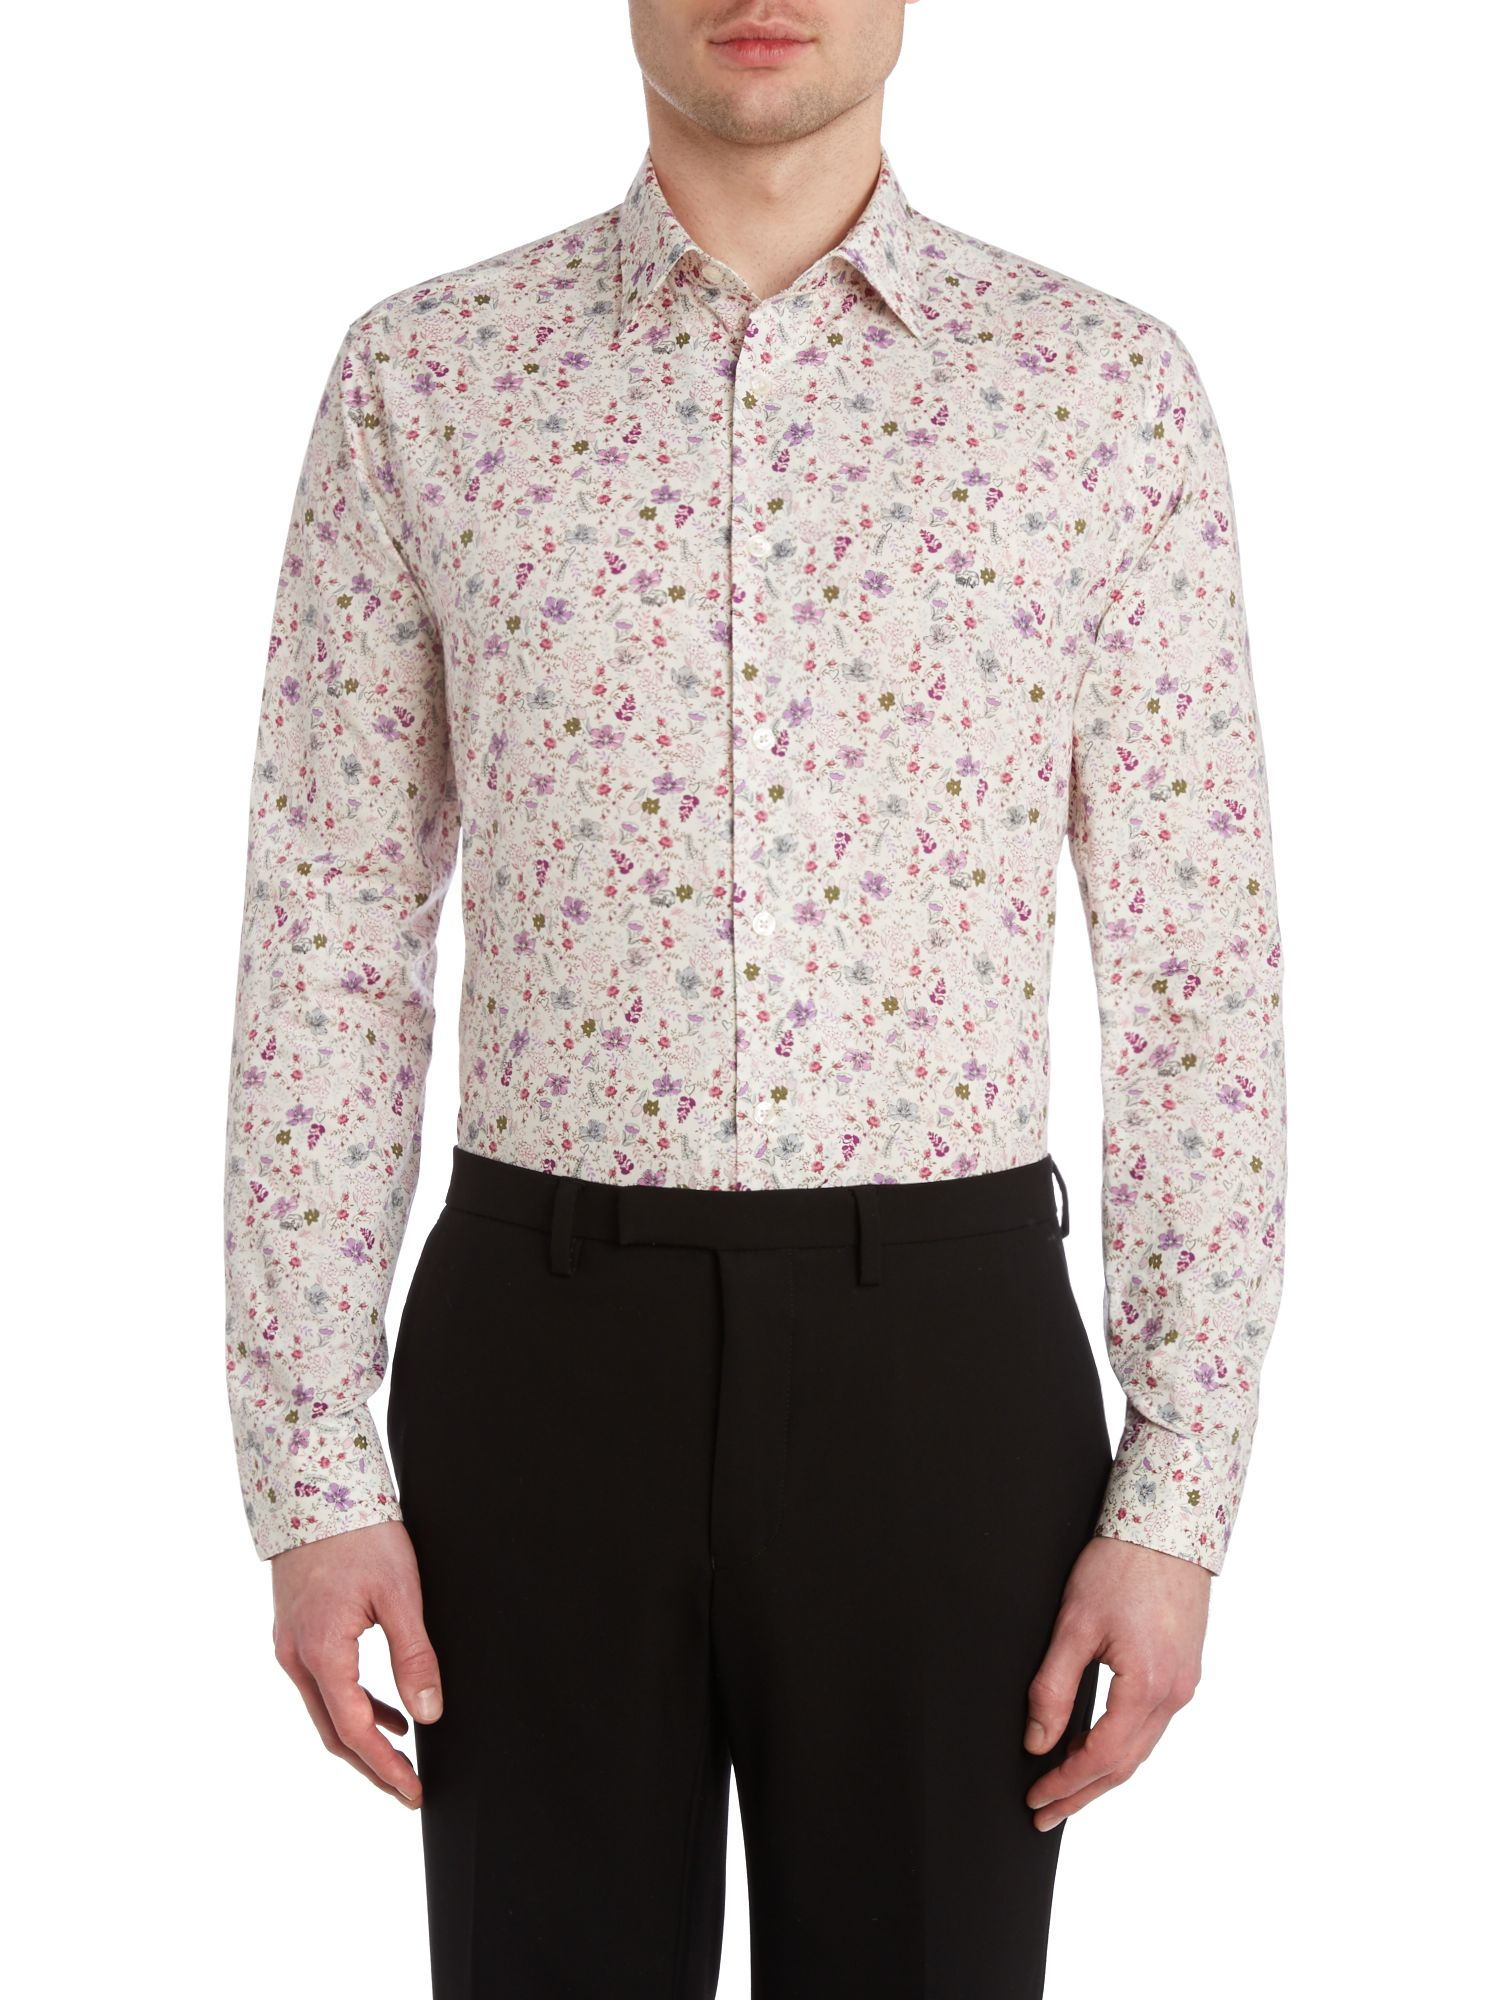 Byard floral slim fit shirt